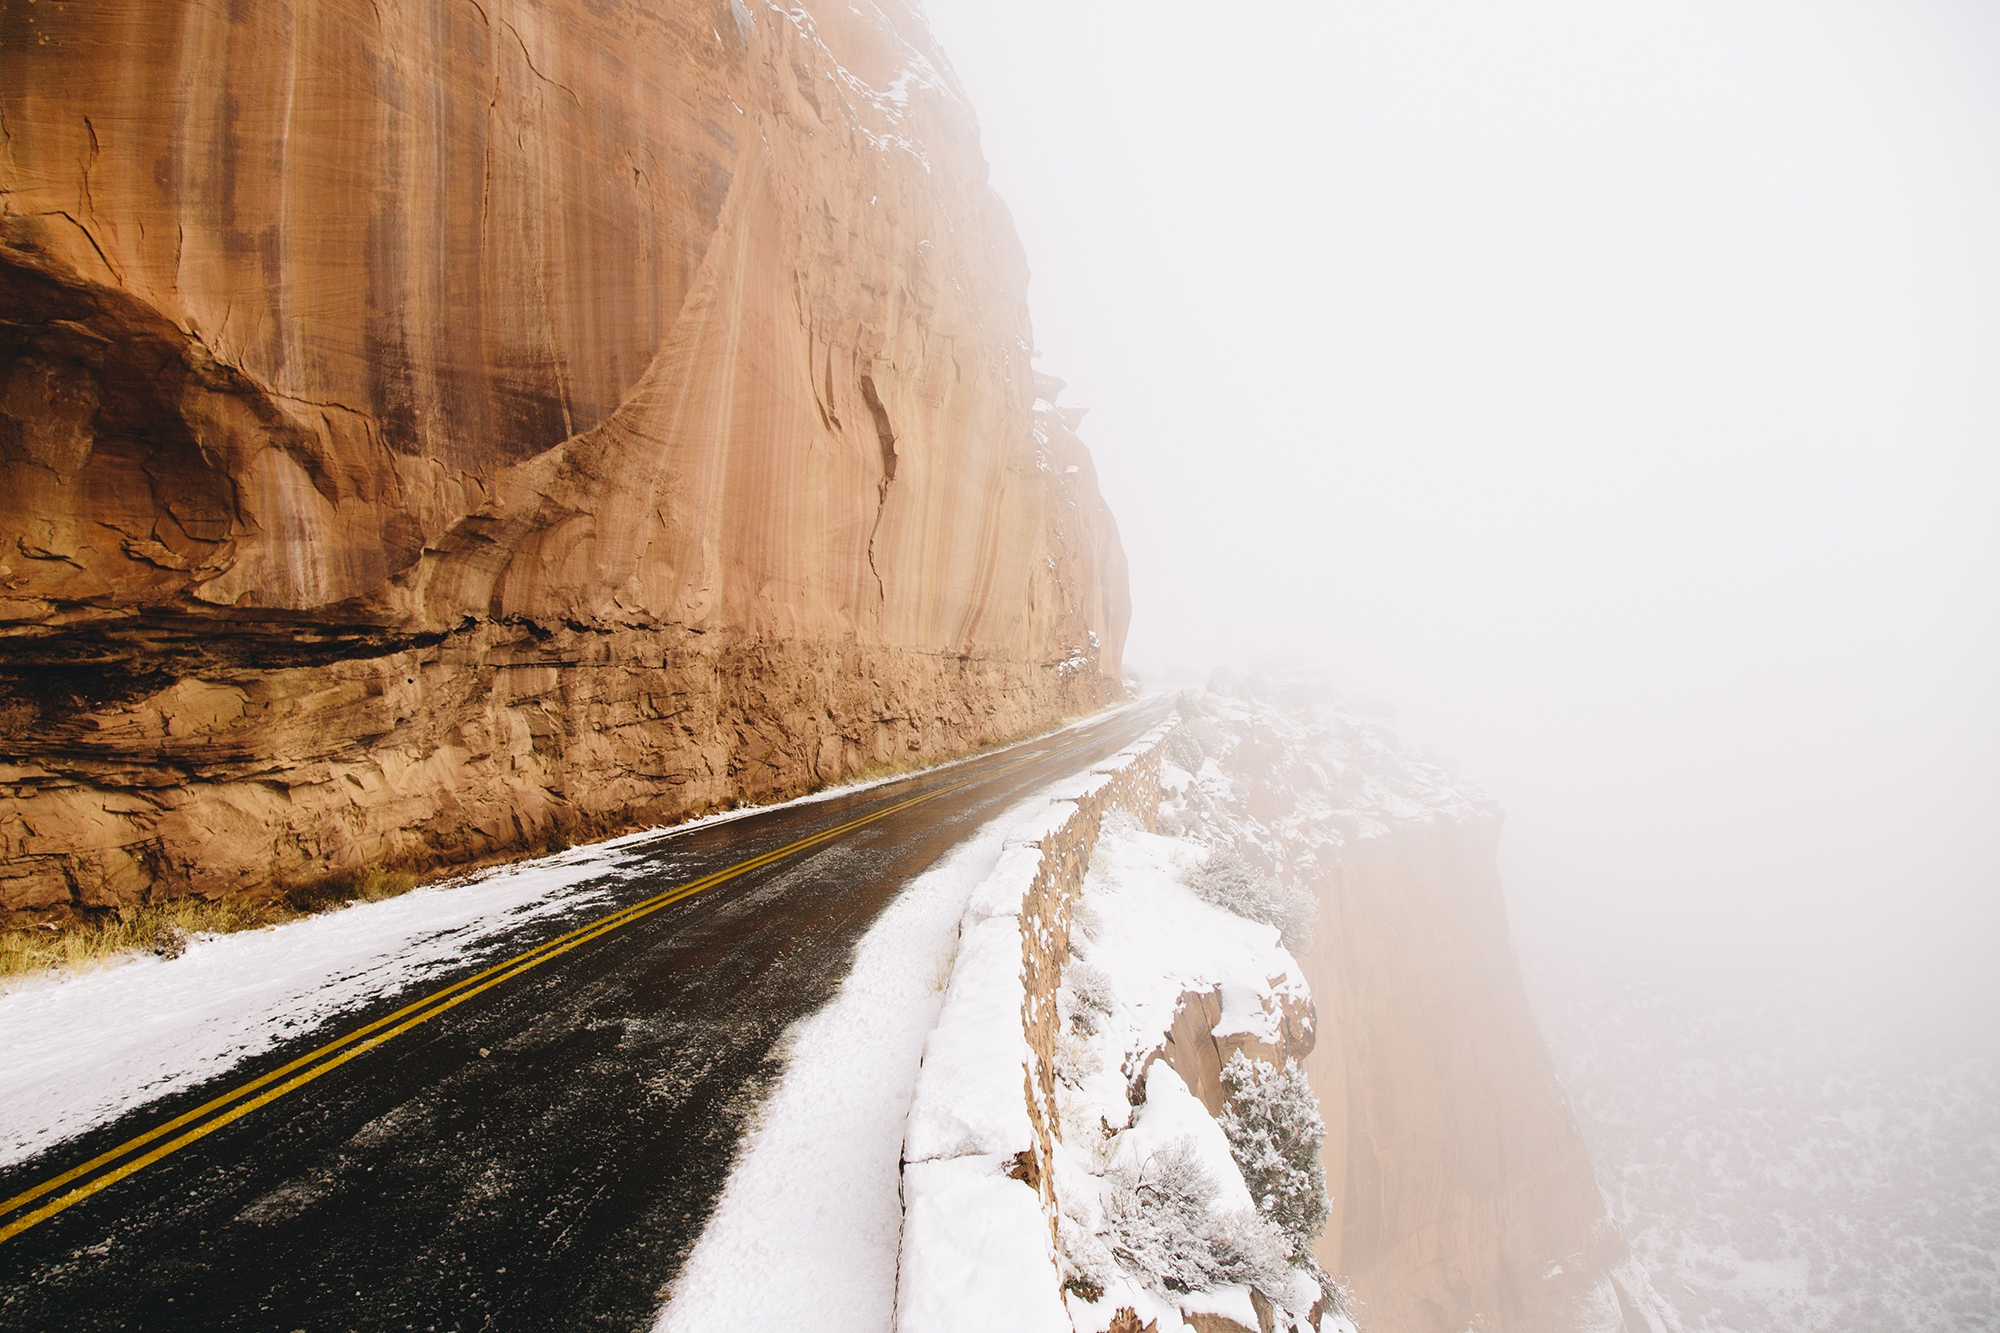 Slippery Slope. Colorado - photography - lauraaustin | ello